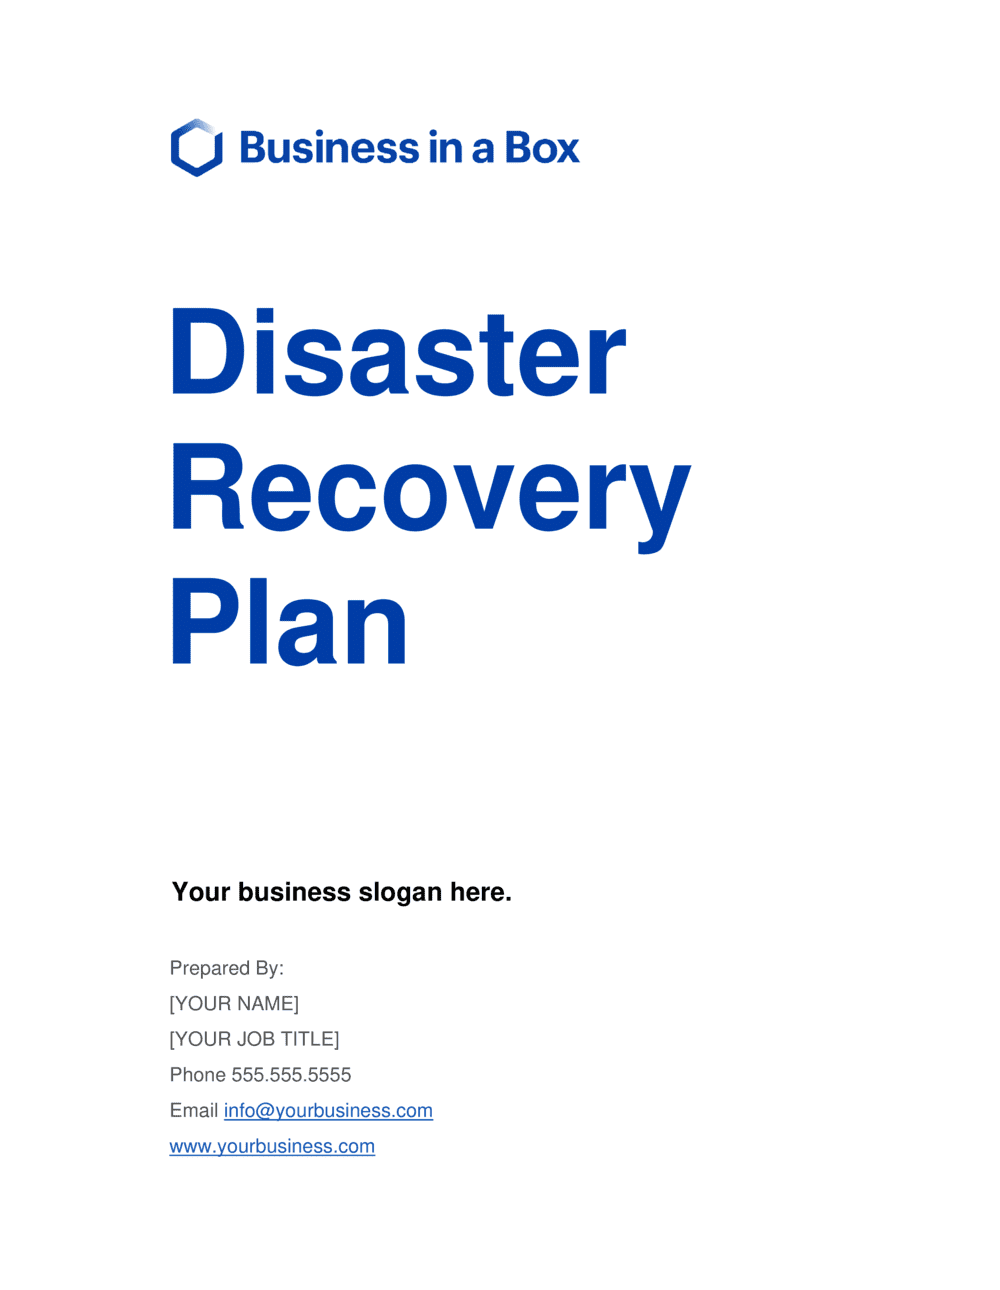 Business-in-a-Box's Disaster Recovery Plan Template